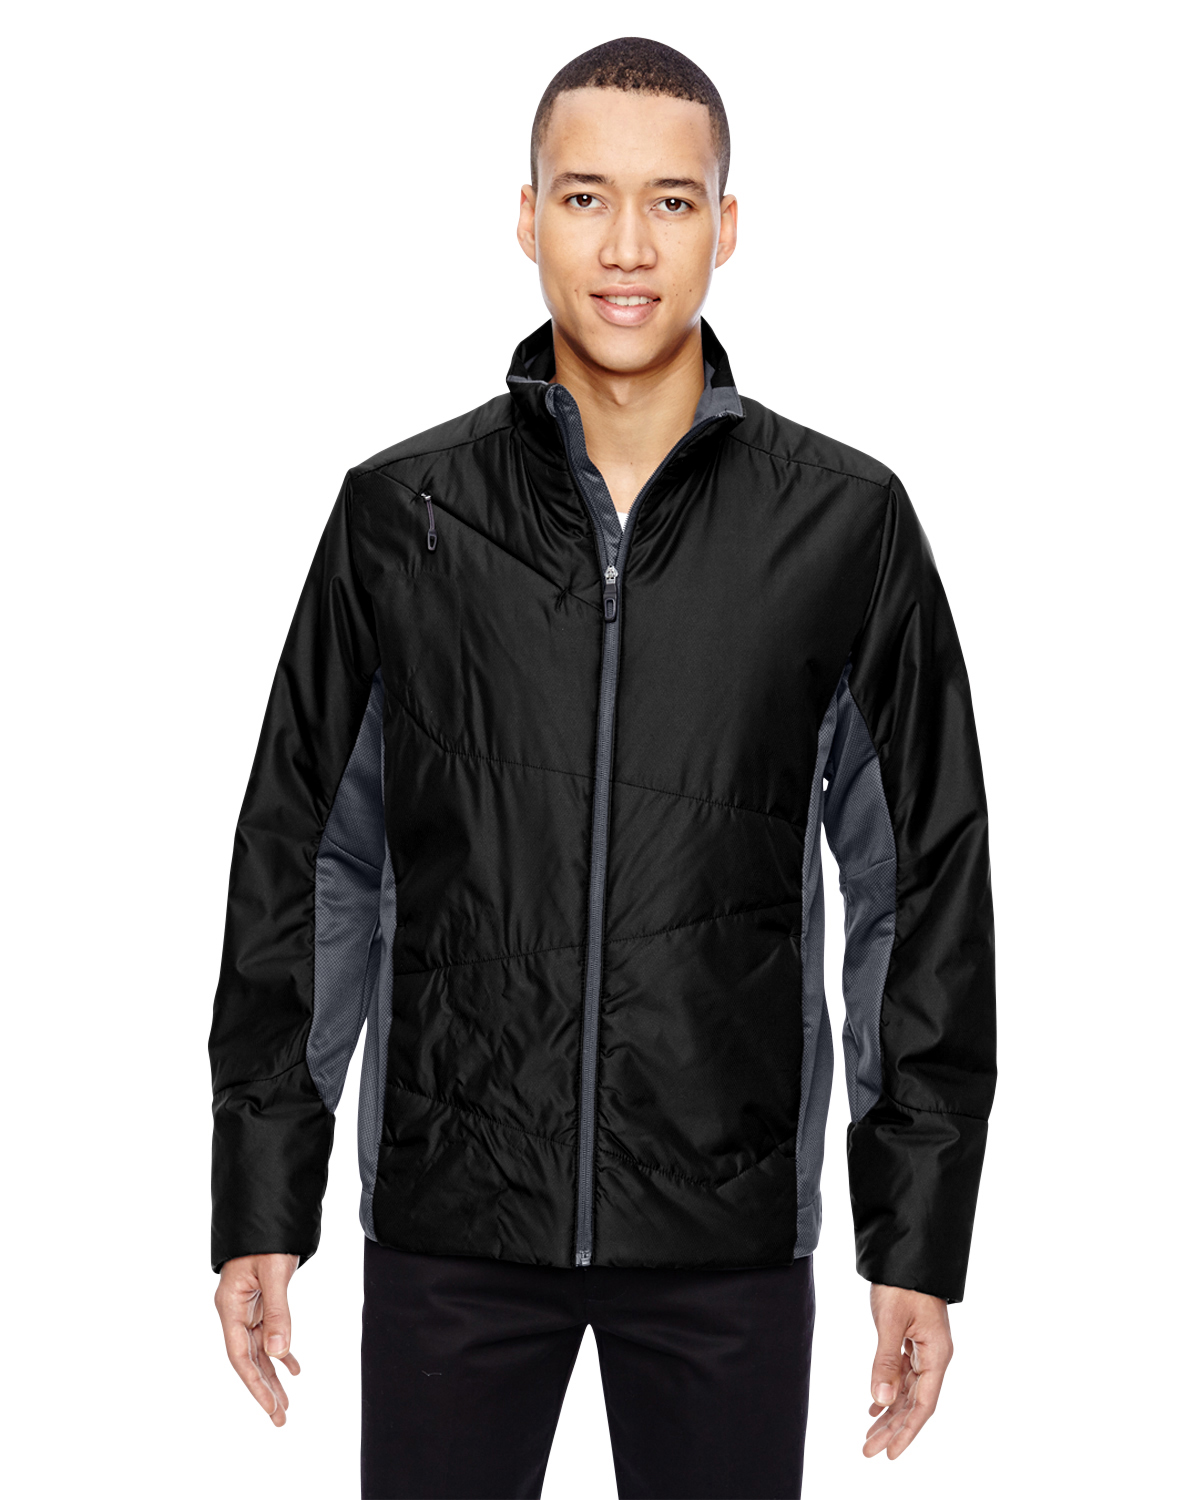 Ash City - North End Sport Red 88696 - Men's Immerge Insulated Hybrid Jacket with Heat Reflect Technology